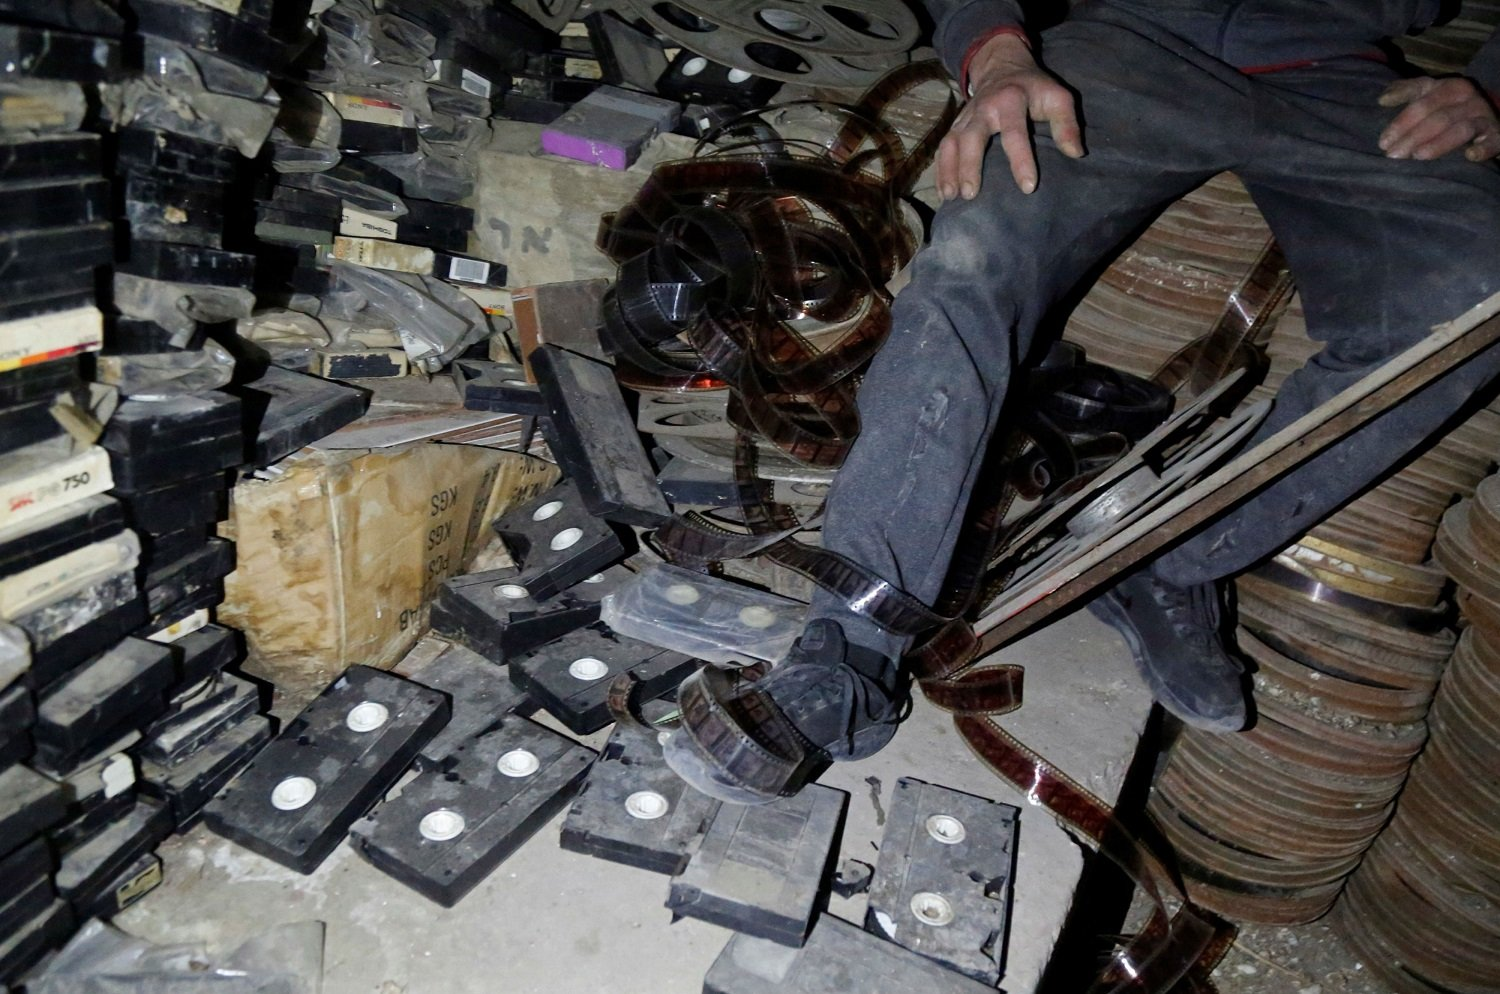 The shells of dust-encrusted videotapes, which also played at the cinema during its heyday, crack and crumple under foot on the floor of the store room. (Reuters)